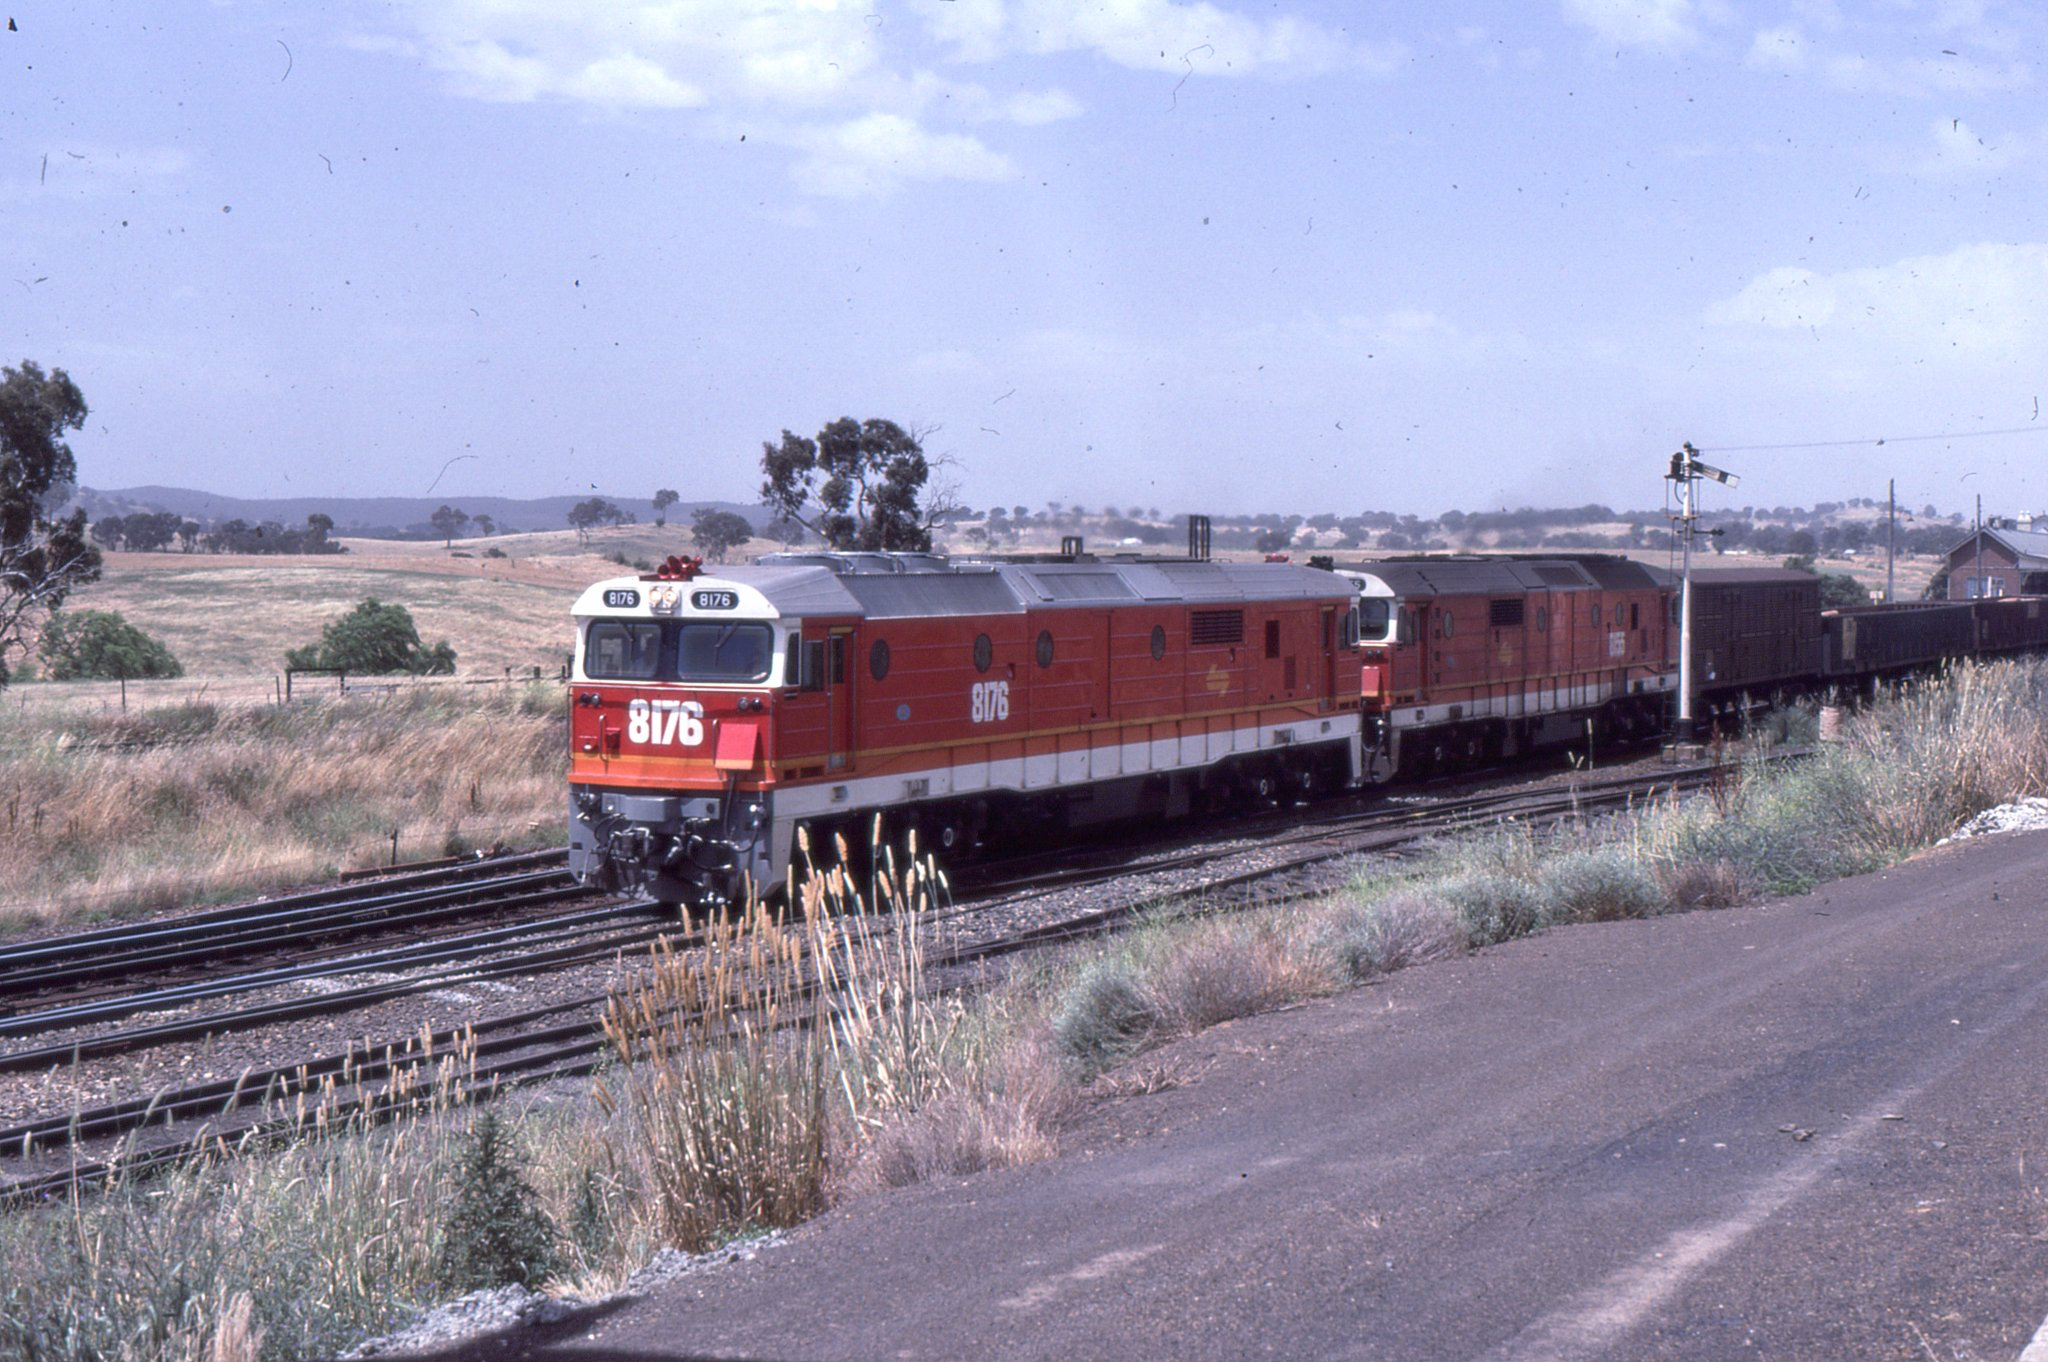 nsw sra 8176 and 8155 haul a southbound freight train through yass junction nsw 1985 train poconos railway pinterest